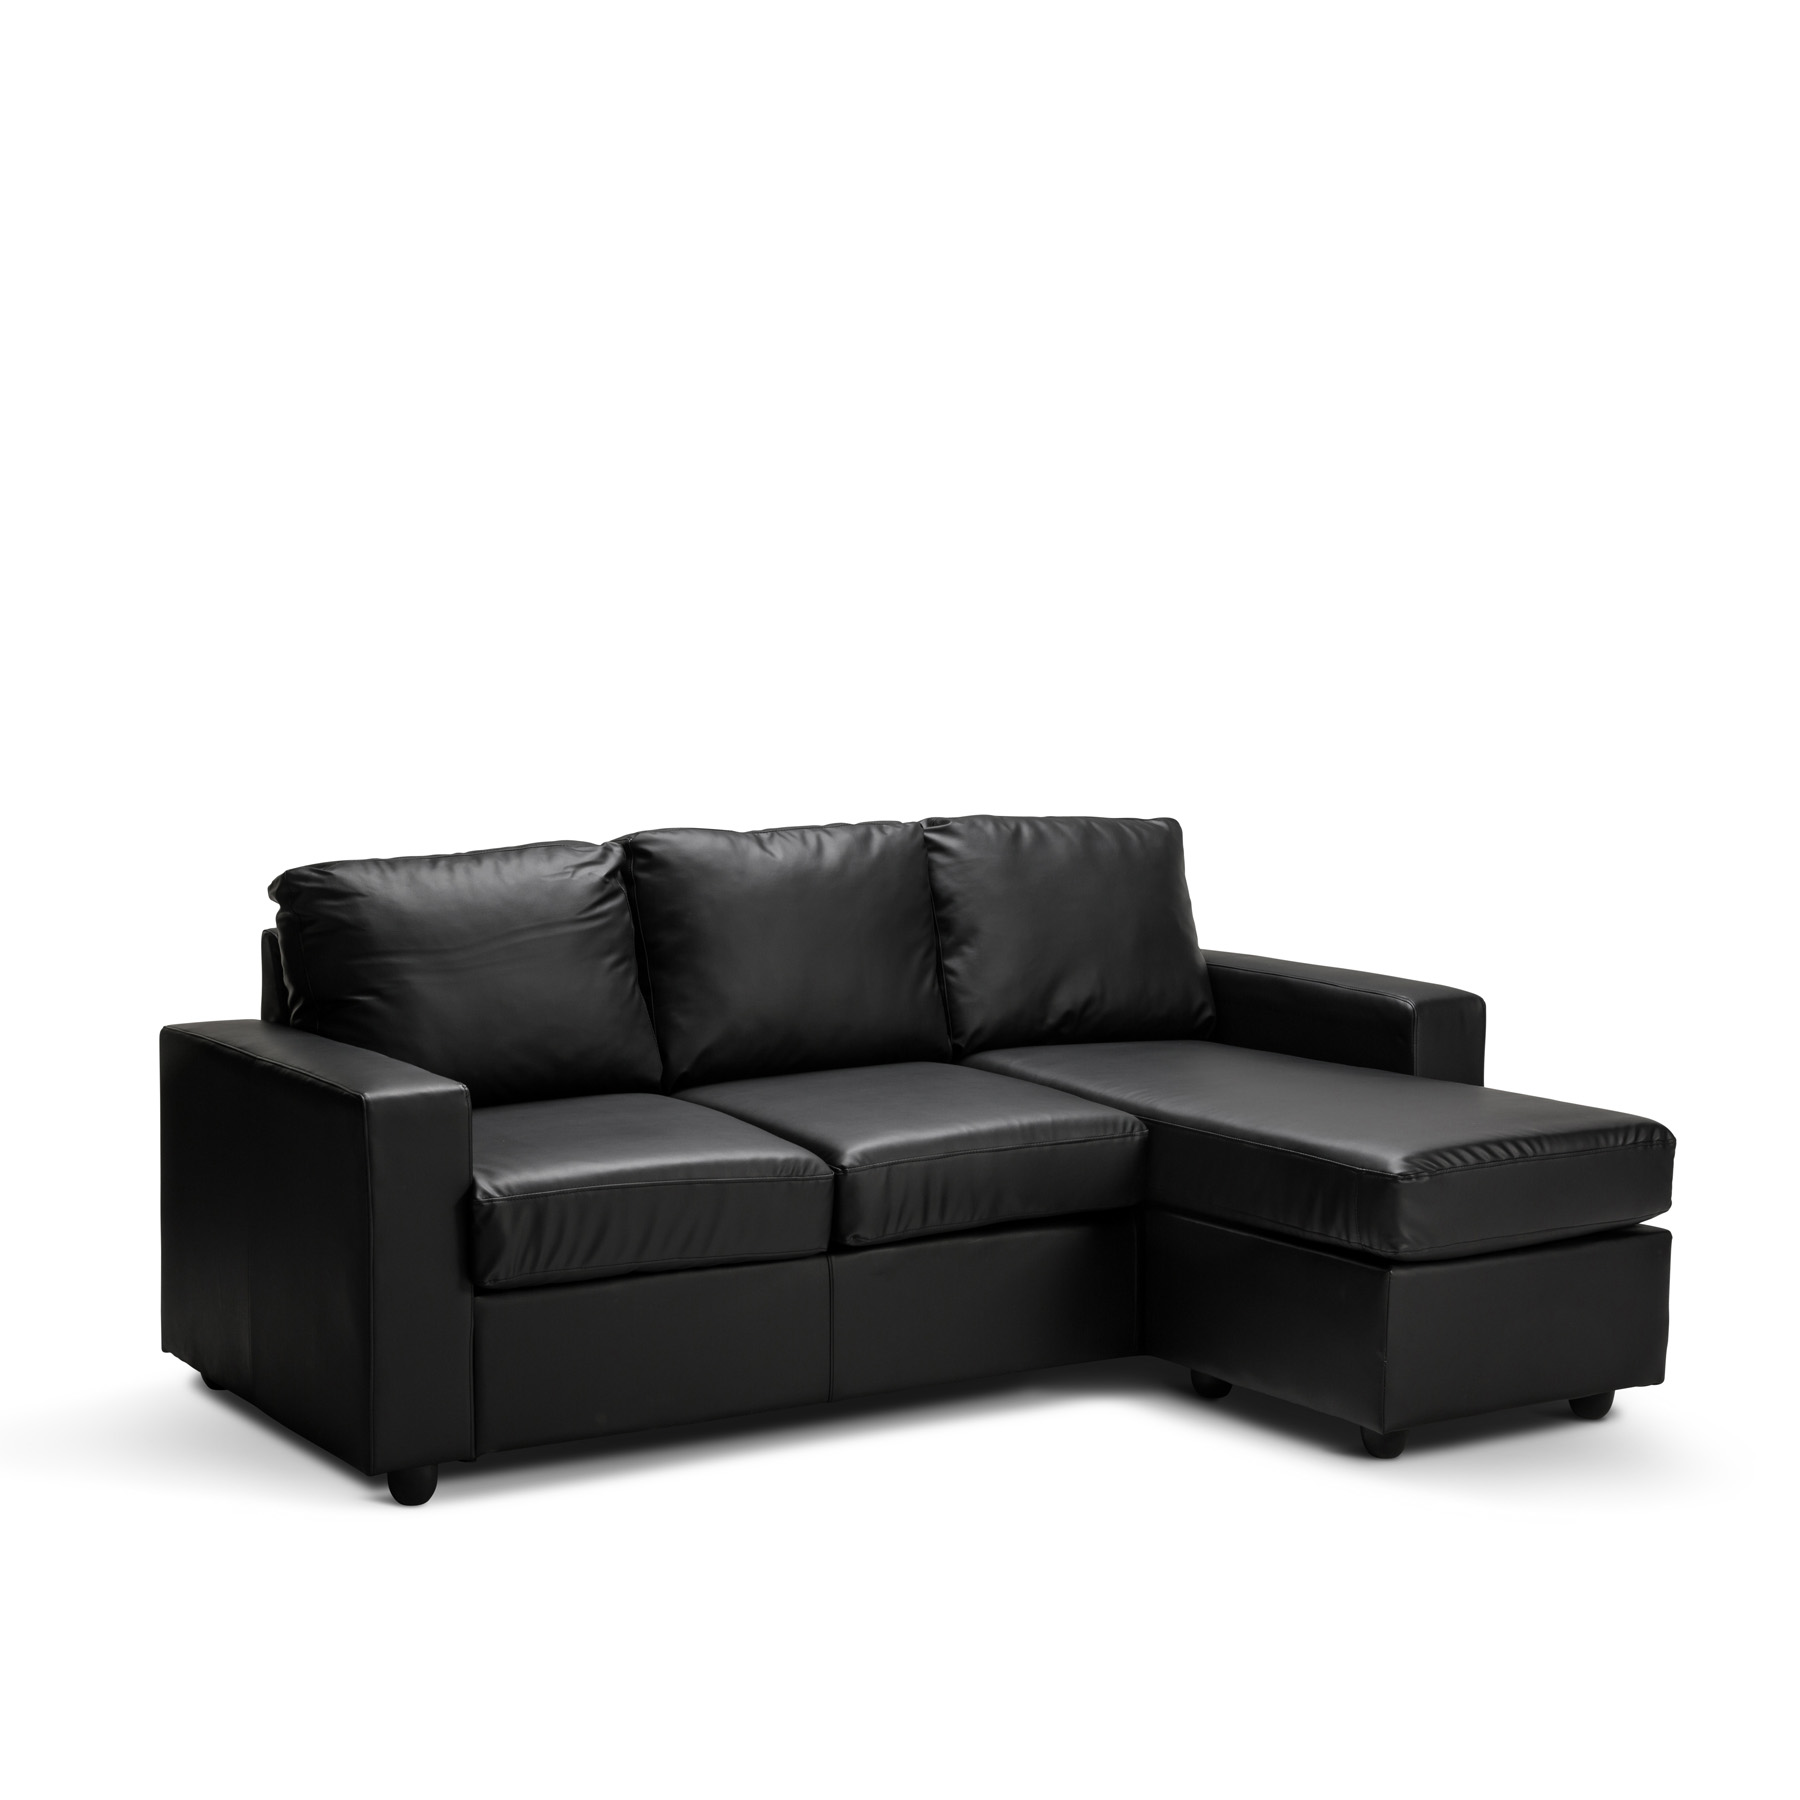 olivia new 3 seater l shape lounge black brown modular. Black Bedroom Furniture Sets. Home Design Ideas